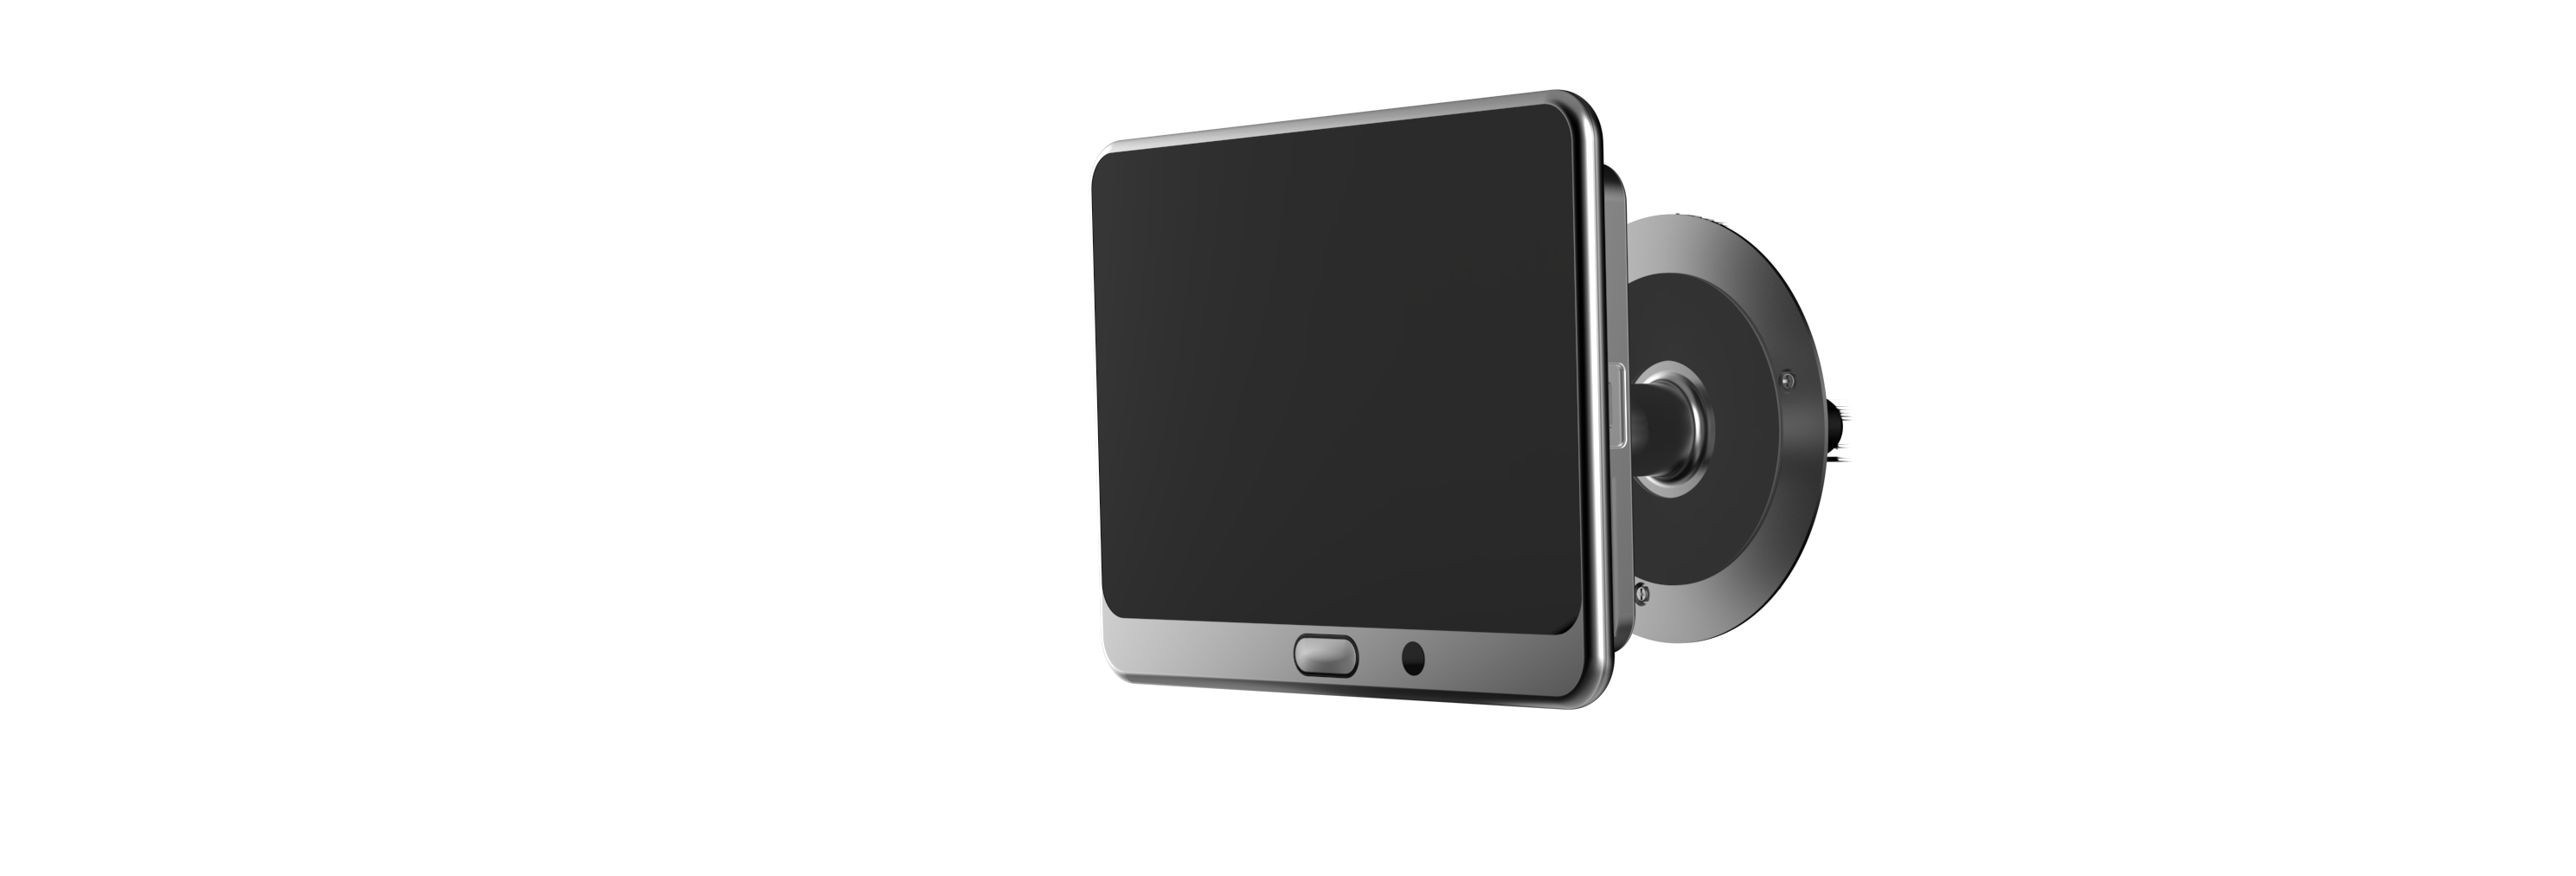 EZVIZ's 'Lookout Smart Door Viewer' turns a peephole into a smart